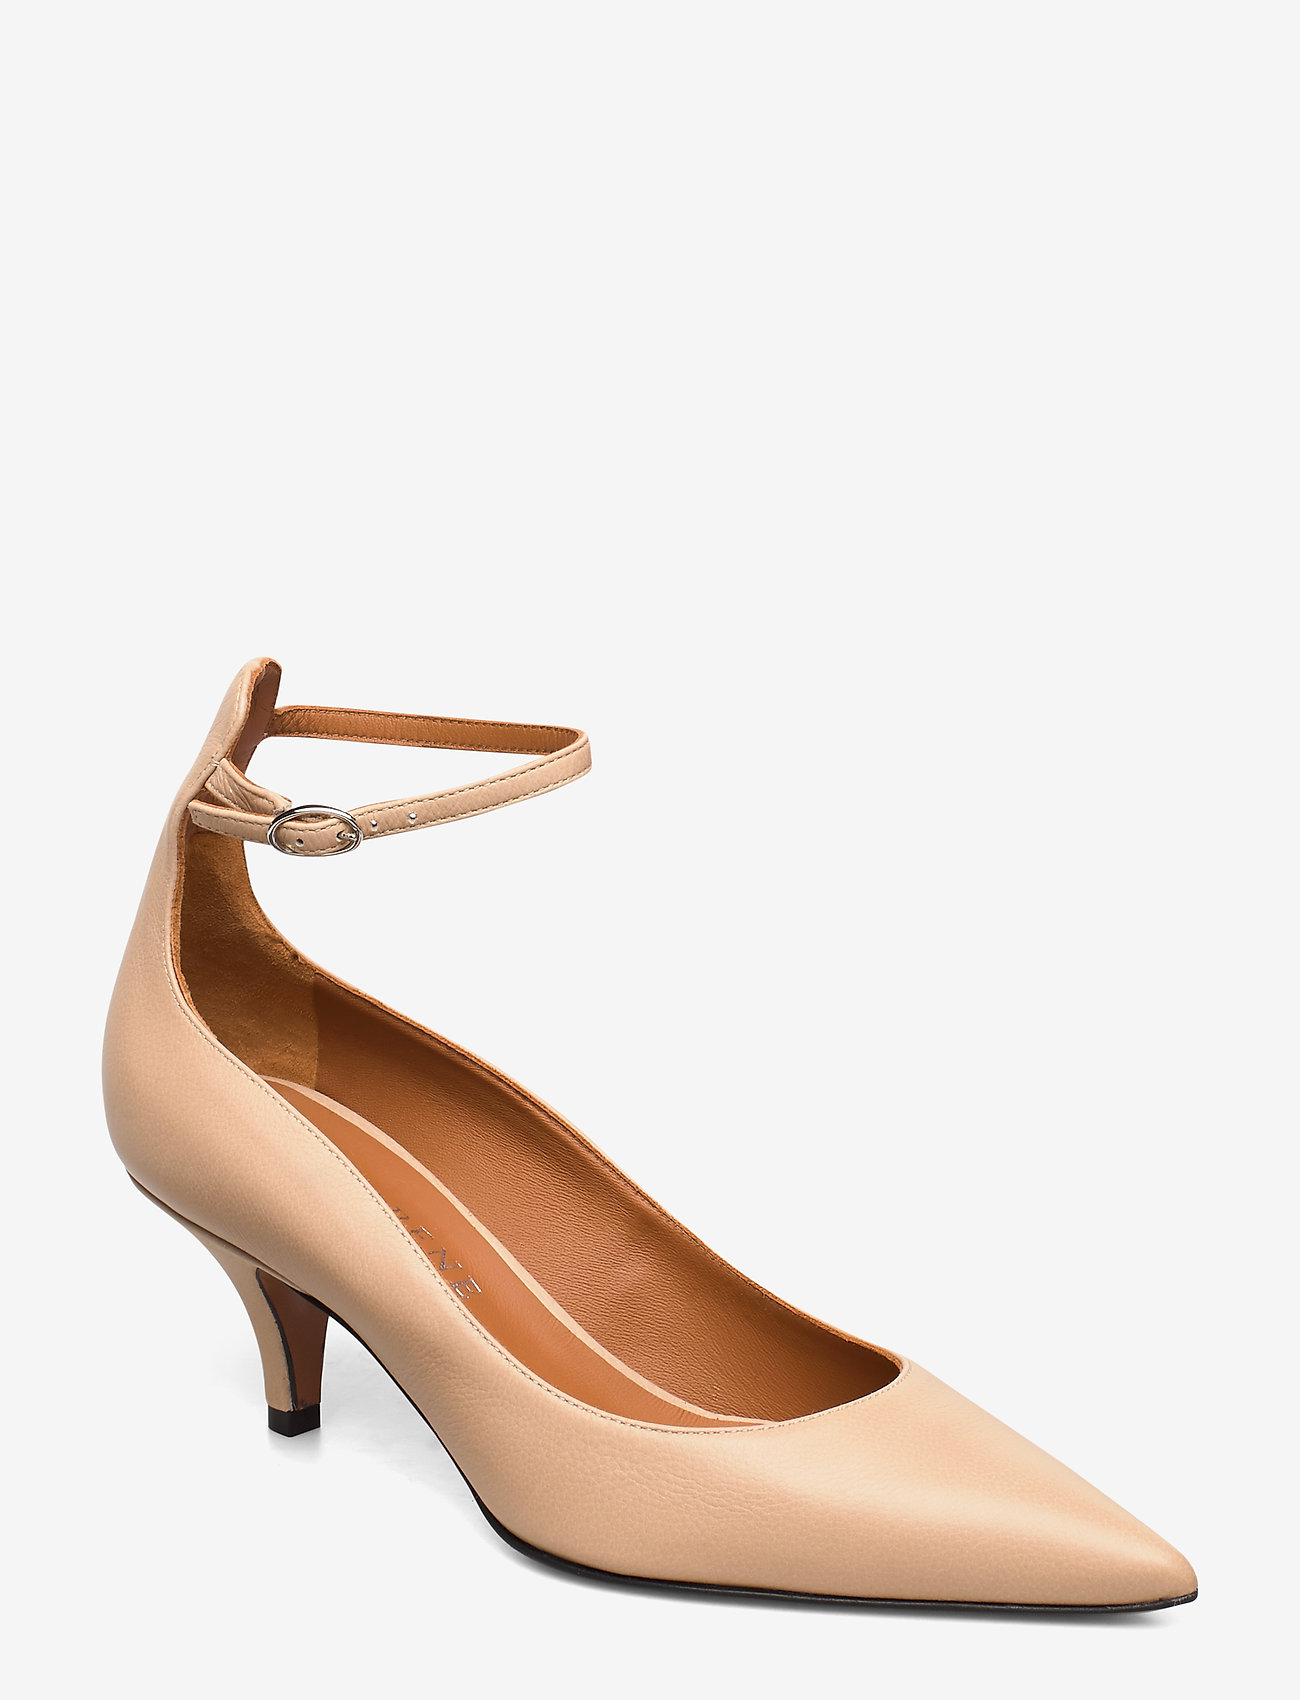 NOTABENE - Sonia - classic pumps - nude leather - 0